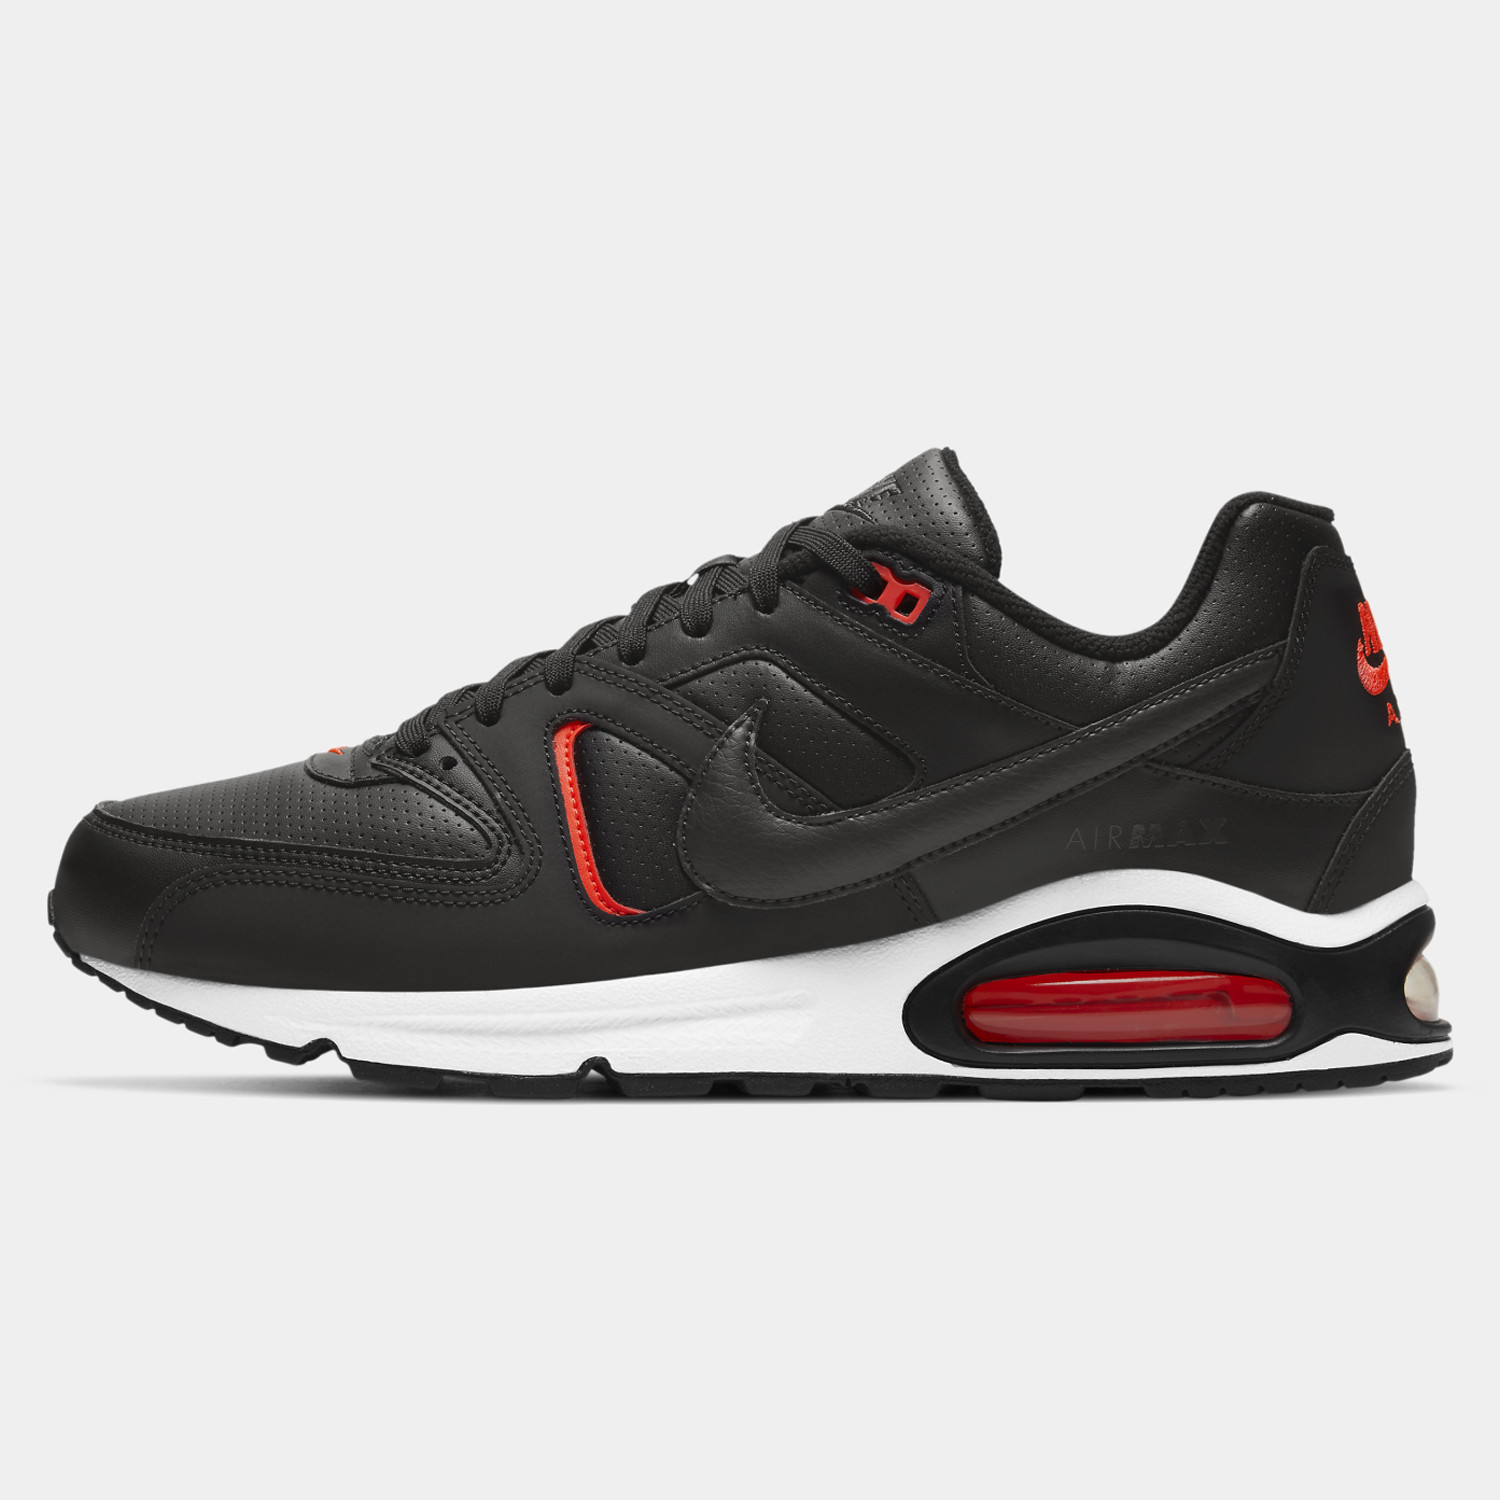 Nike Air Max Command Ανδρικά Παπούτσια (9000069581_50362)